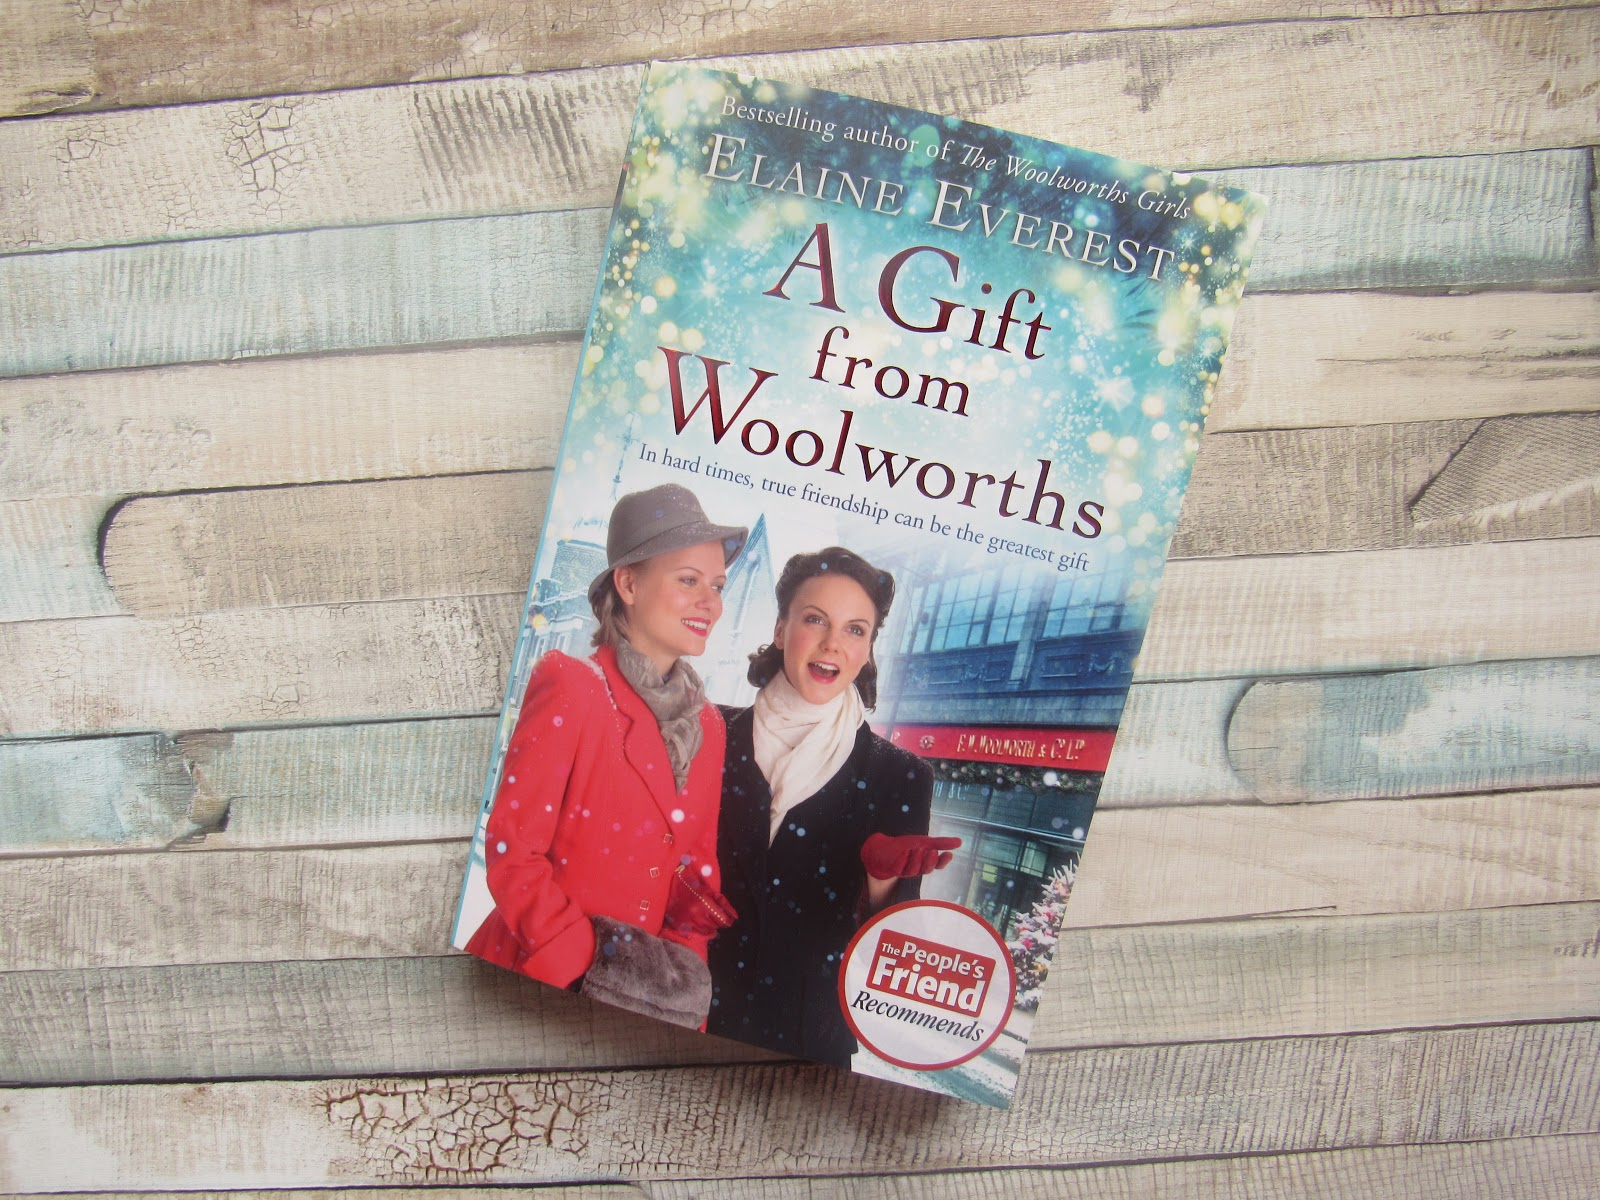 Paperback book of A Gift From Woolworths by Elaine Everest